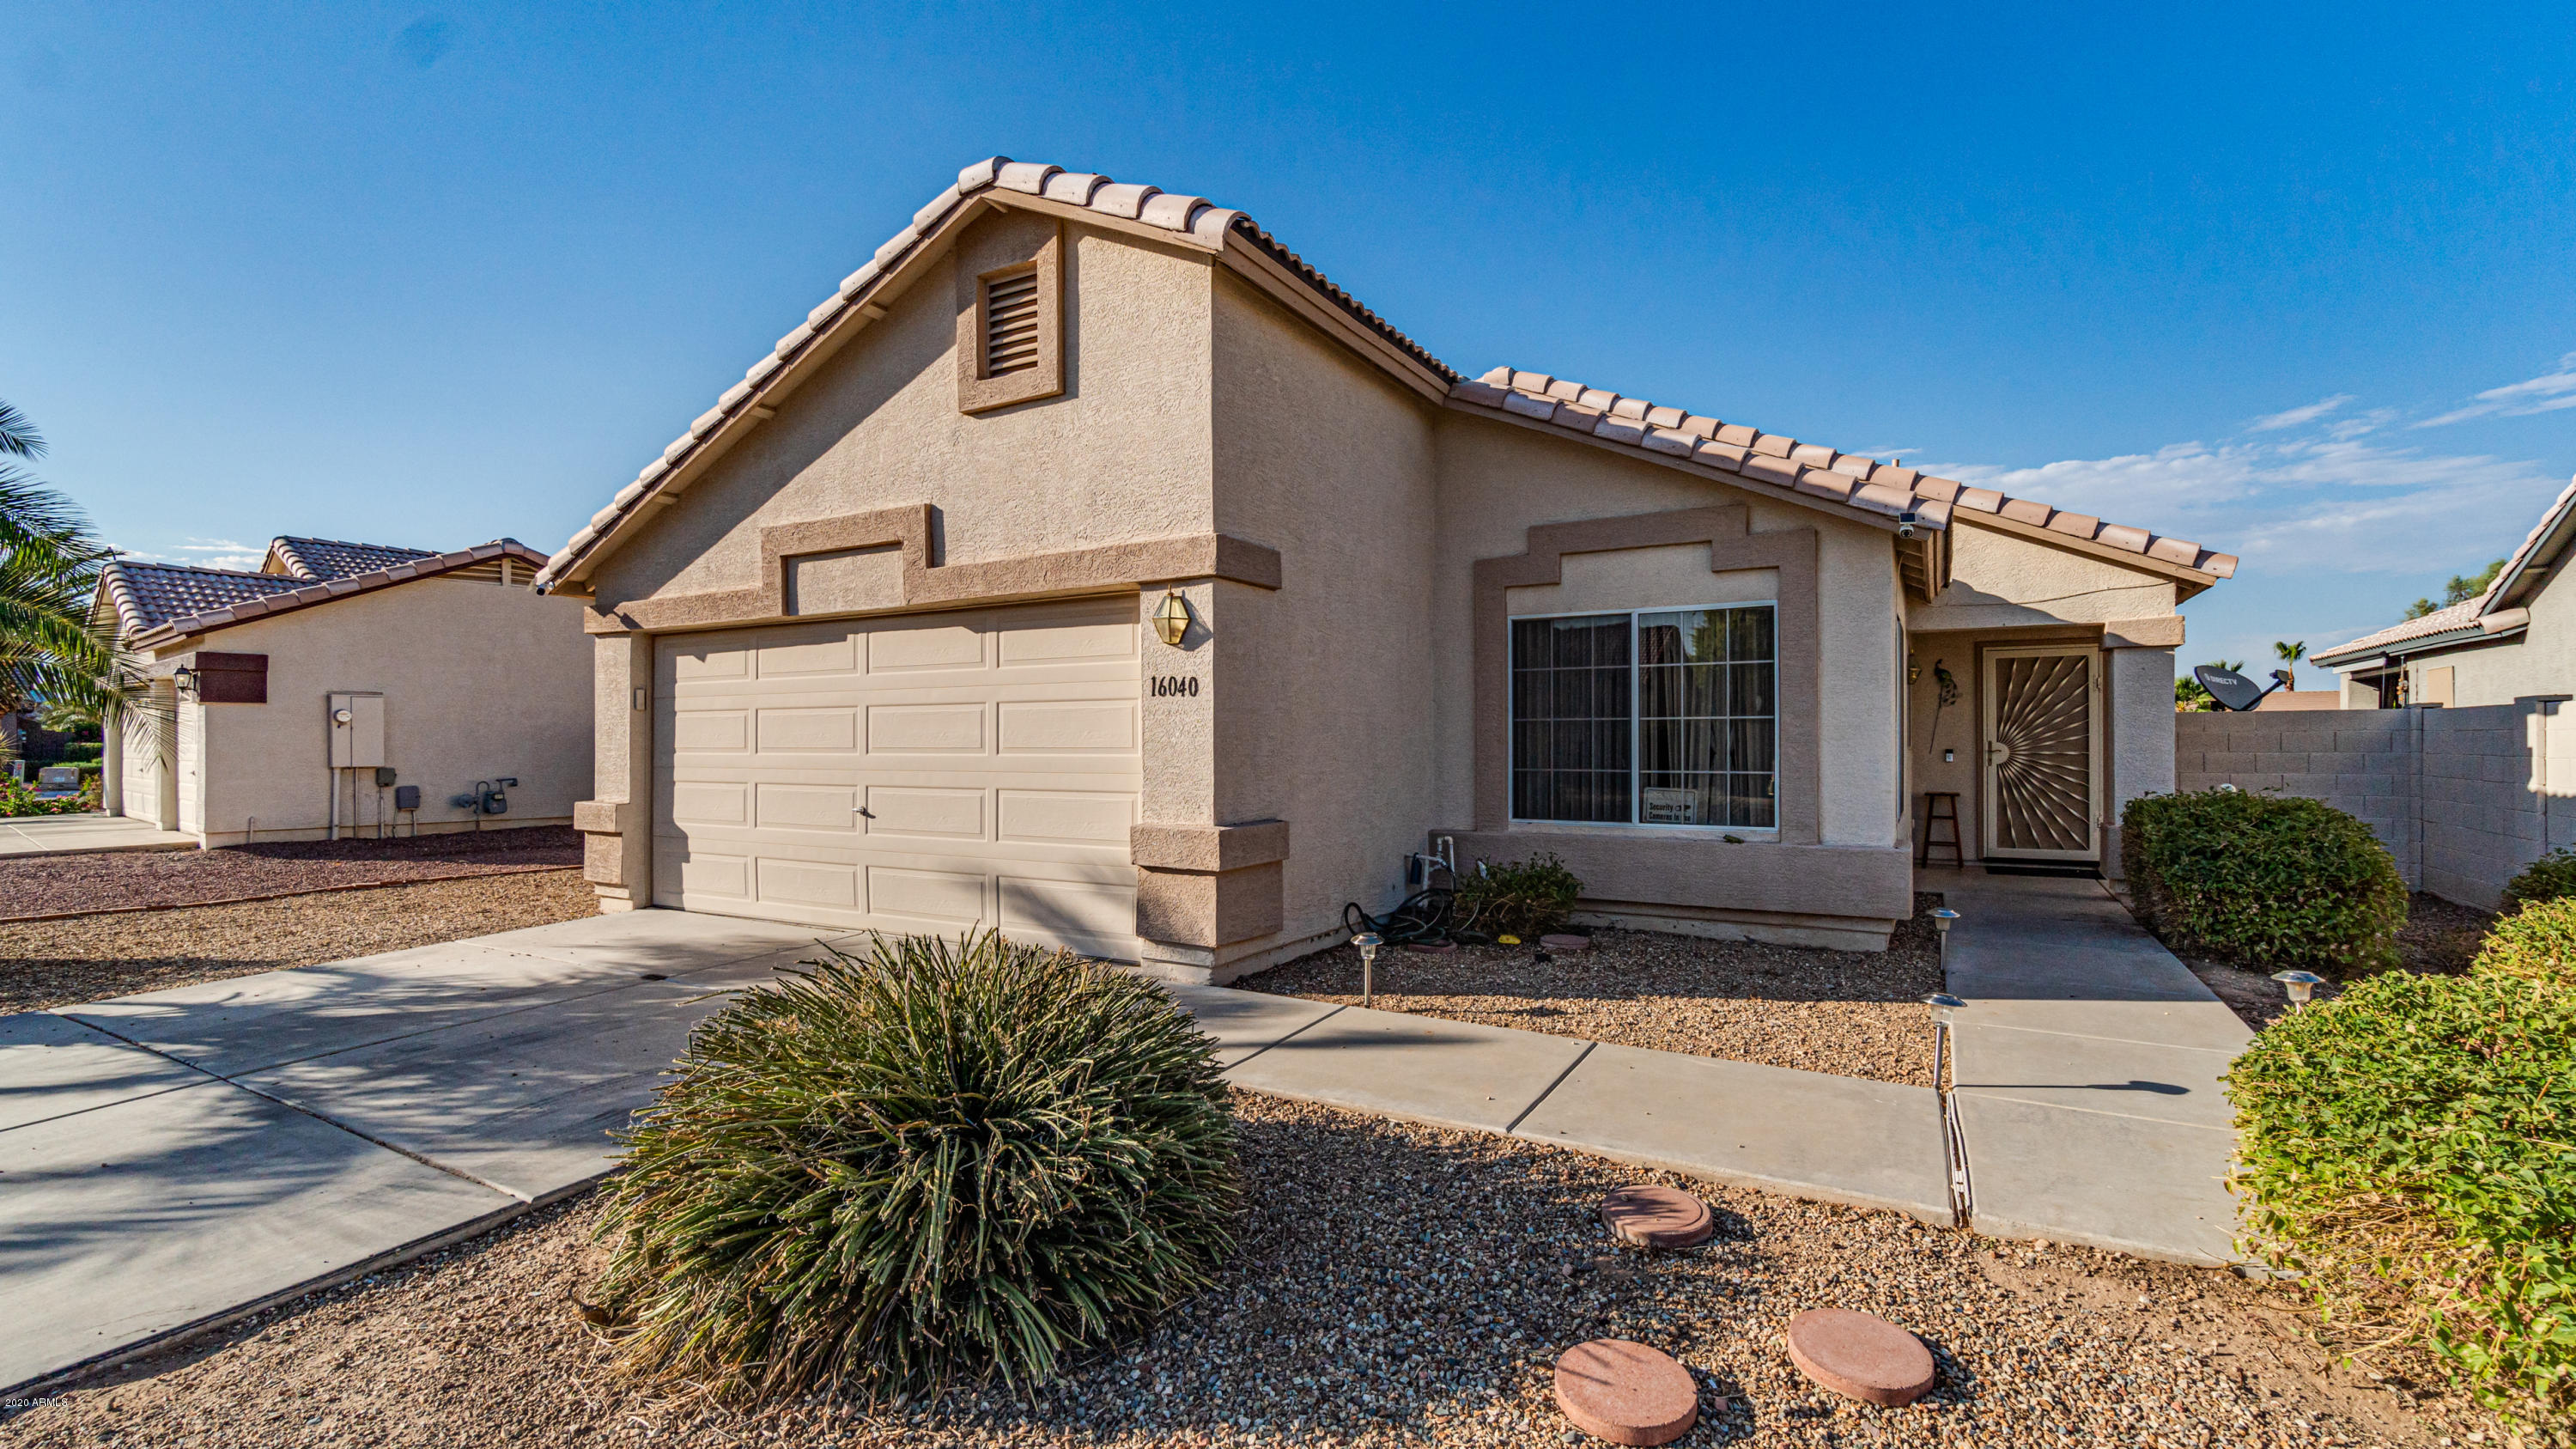 Photo of 16040 W TARA Lane, Surprise, AZ 85374